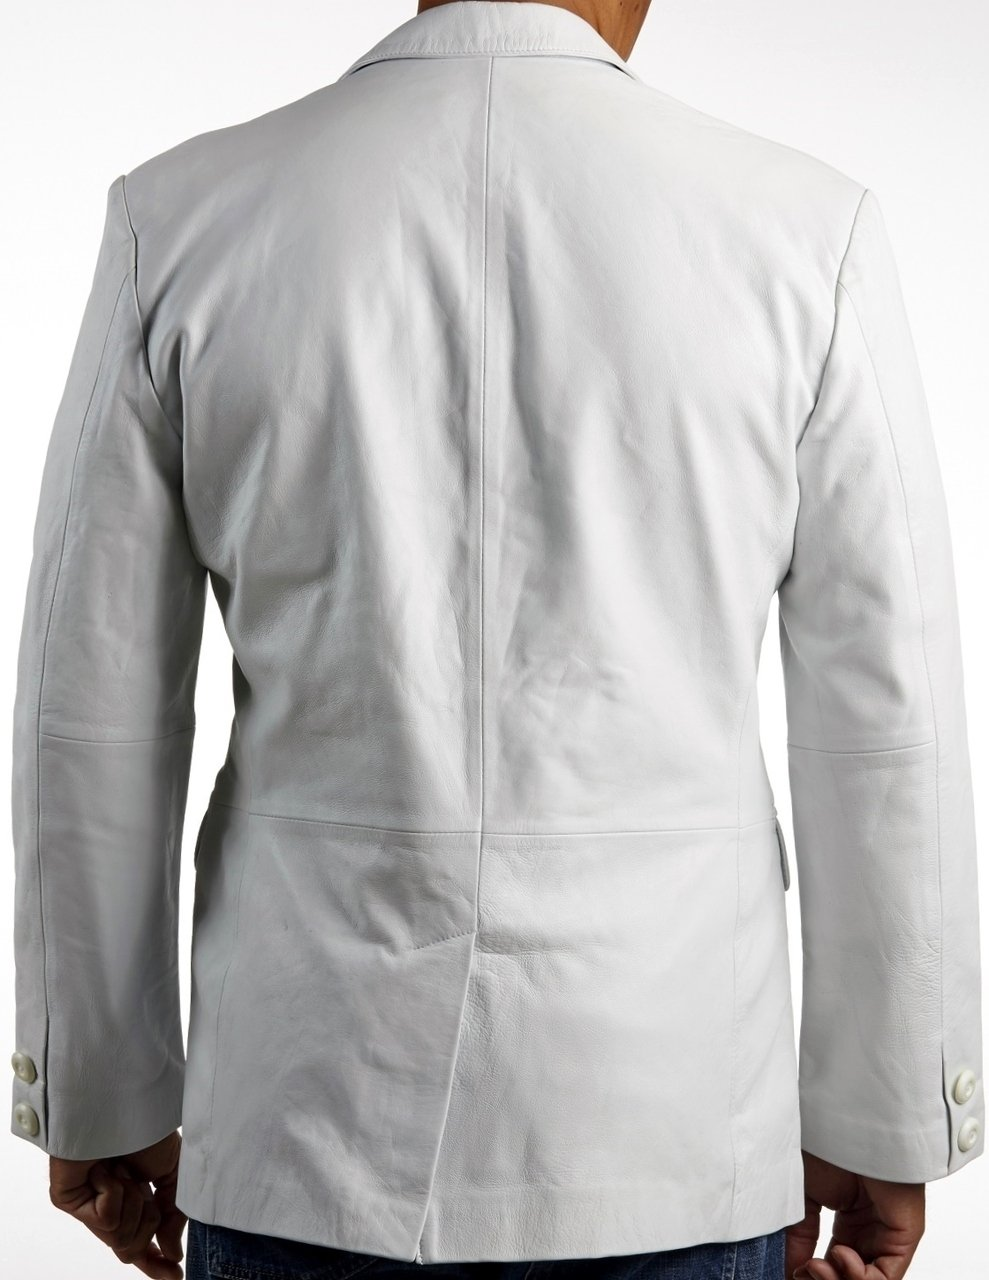 Mens Leather Blazer - Mens Classic White Leather Blazer